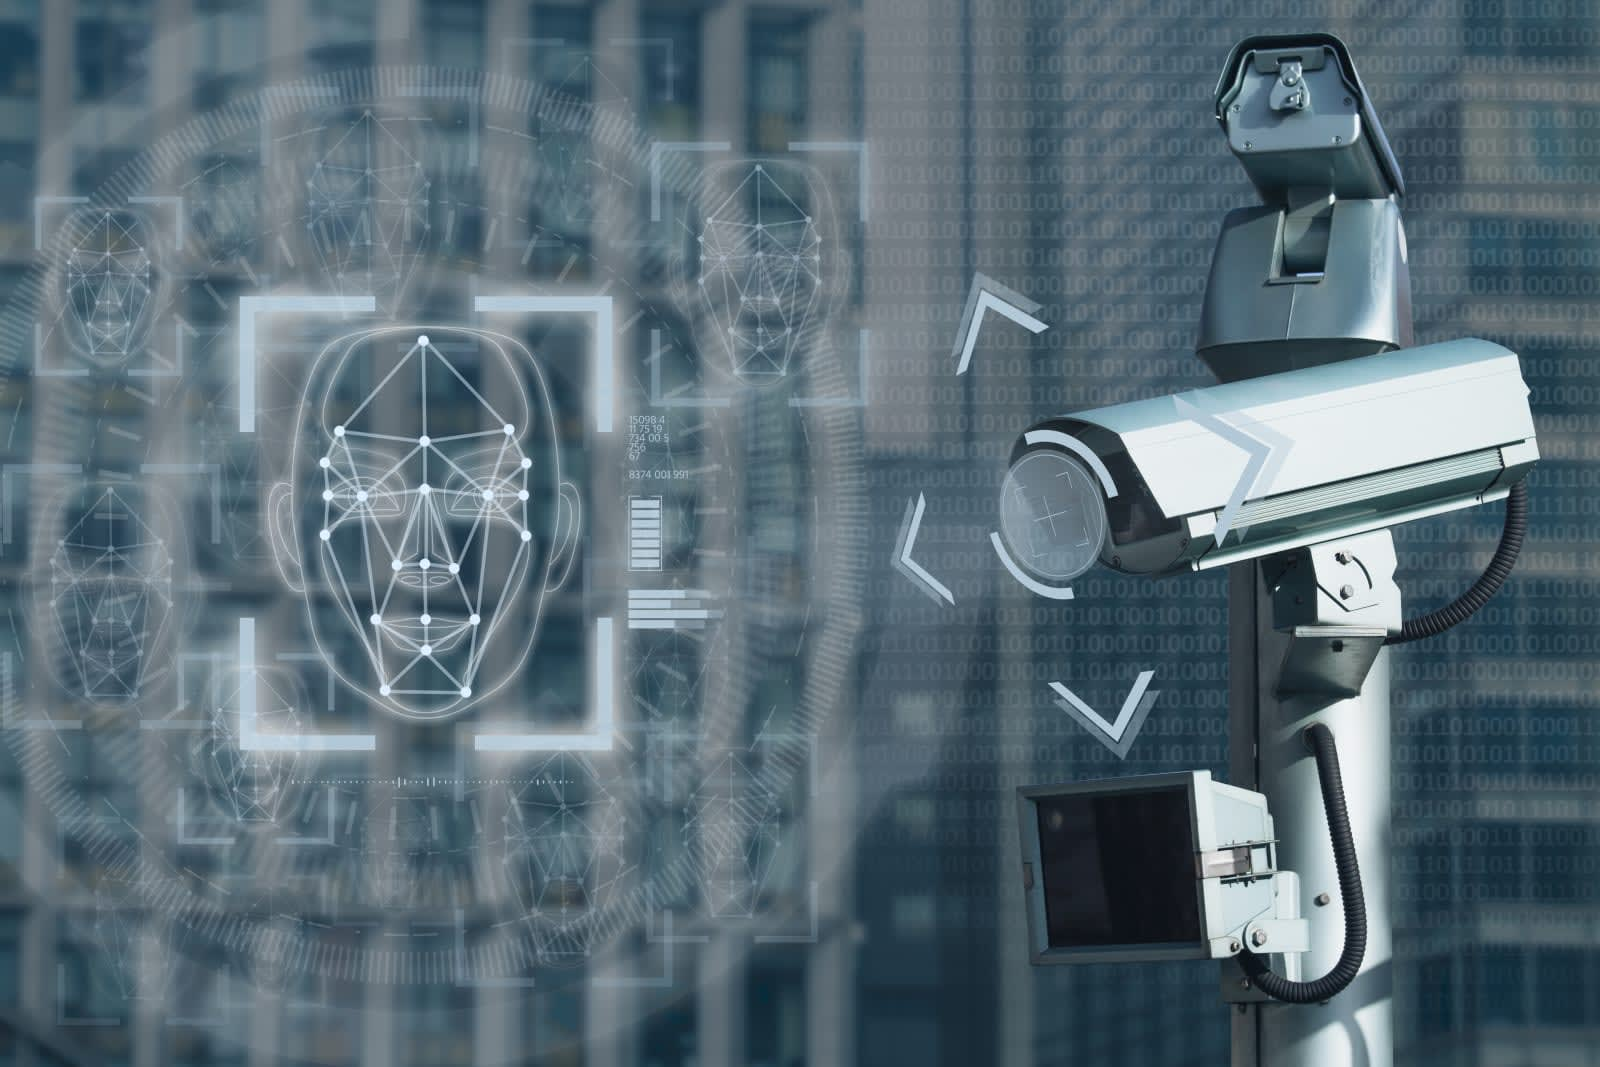 London police begin using live facial recognition tech across the capital